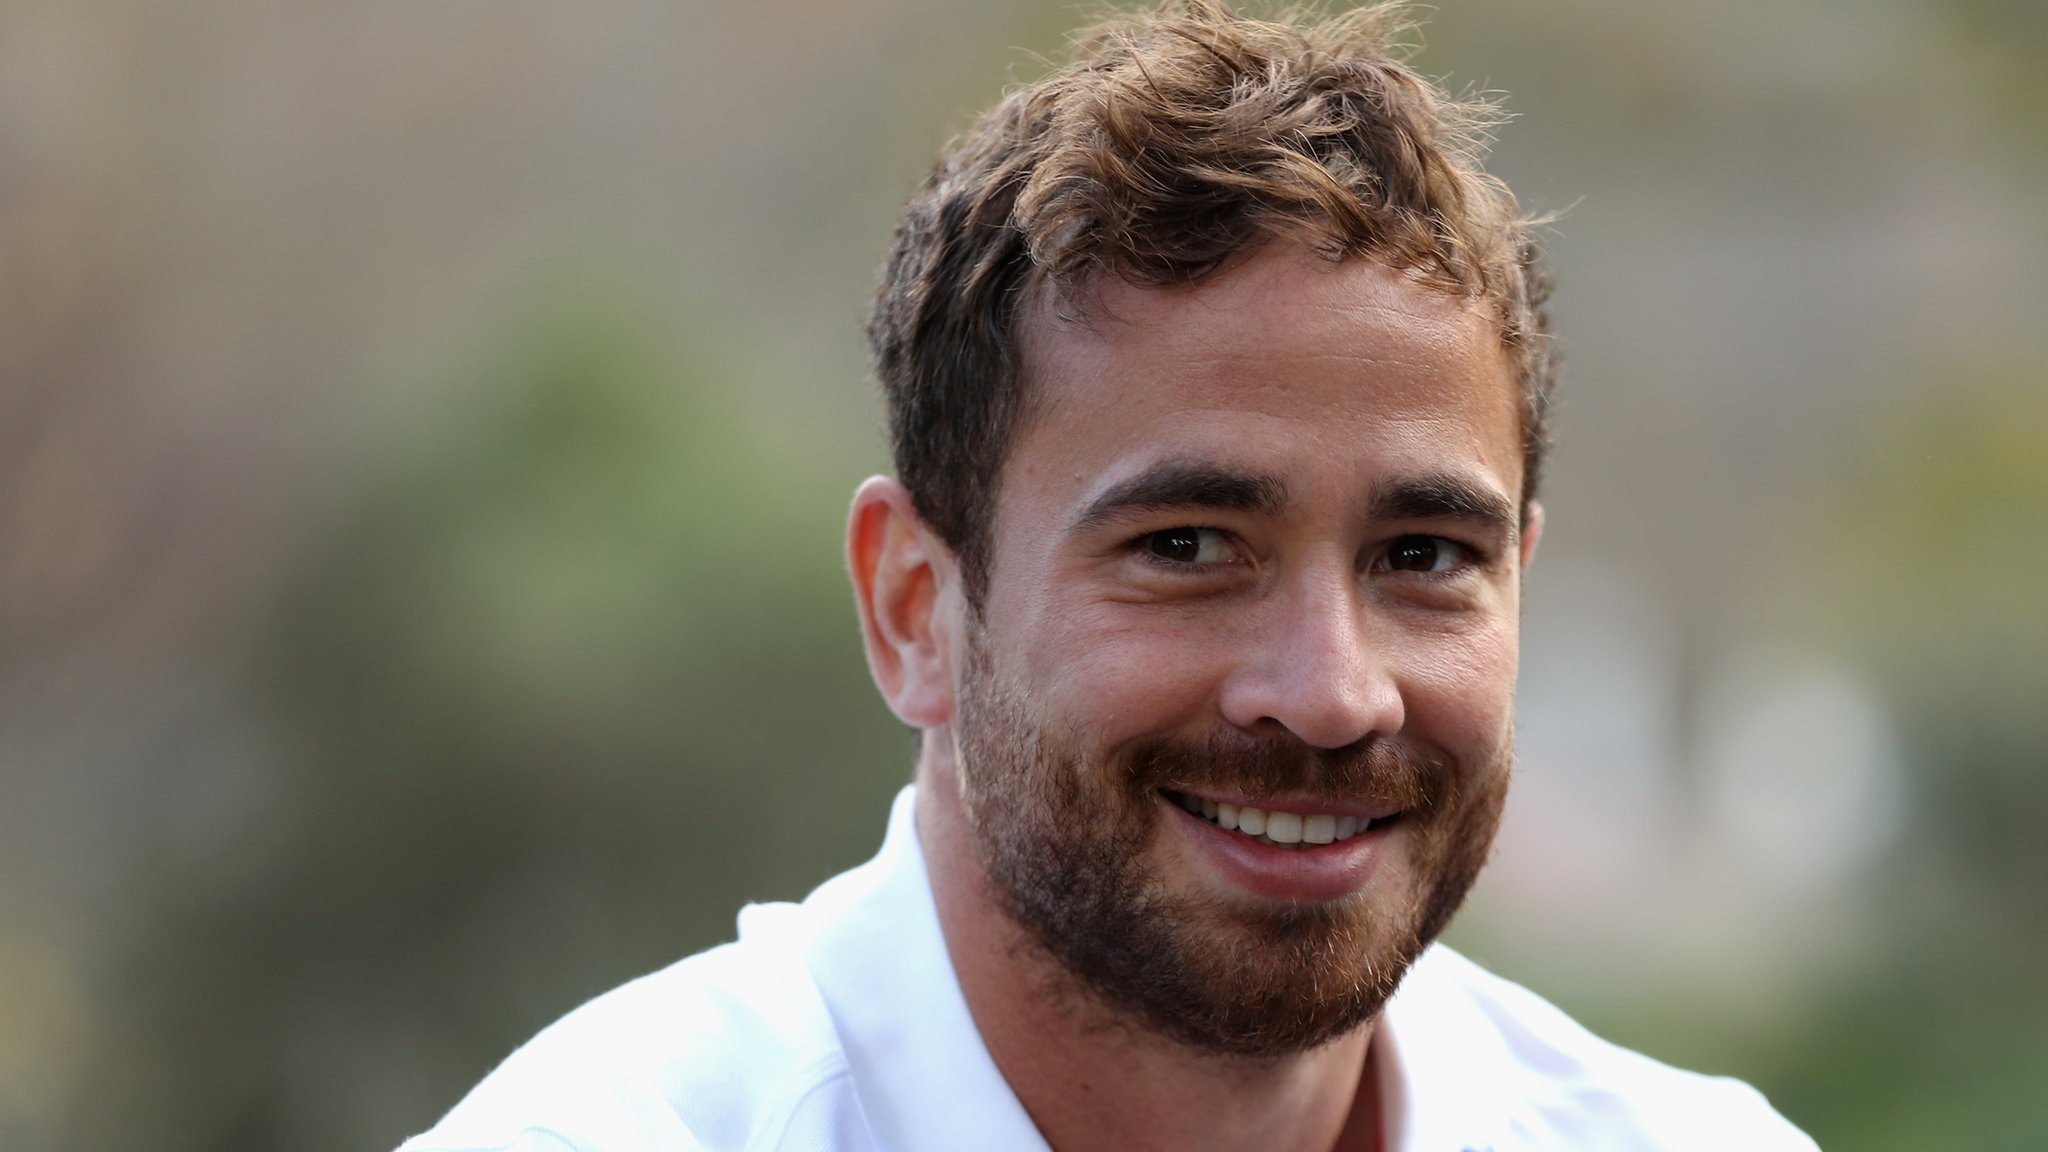 A wasted talent ready to be fulfilled? The second coming of Cipriani